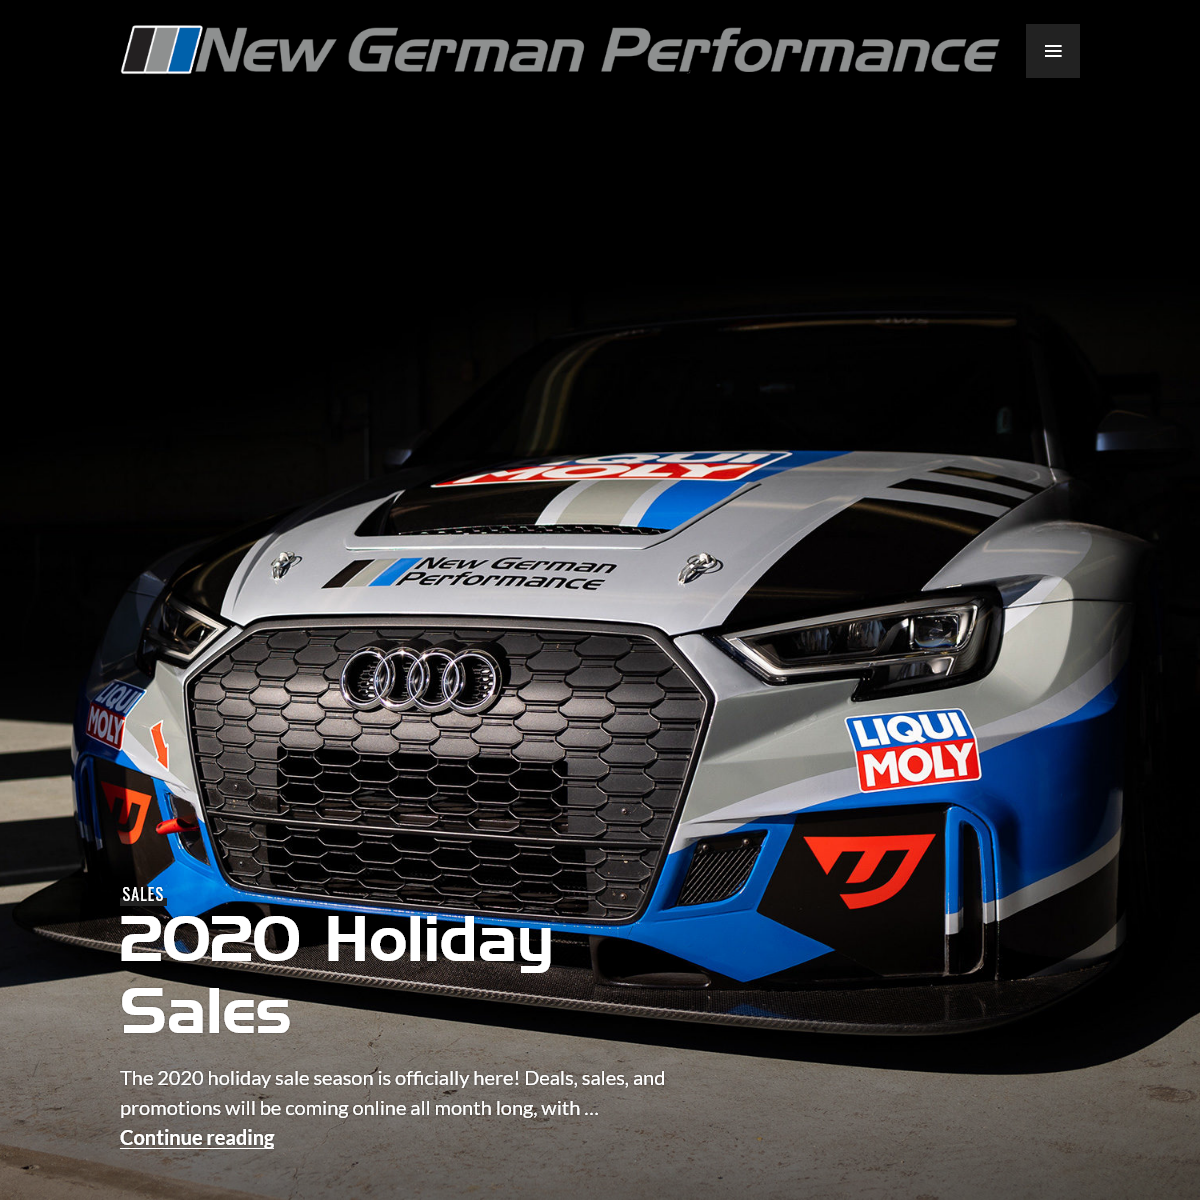 New German Performance - Audi & Volkswagen Parts, Performance, Repair, Service and Tuning